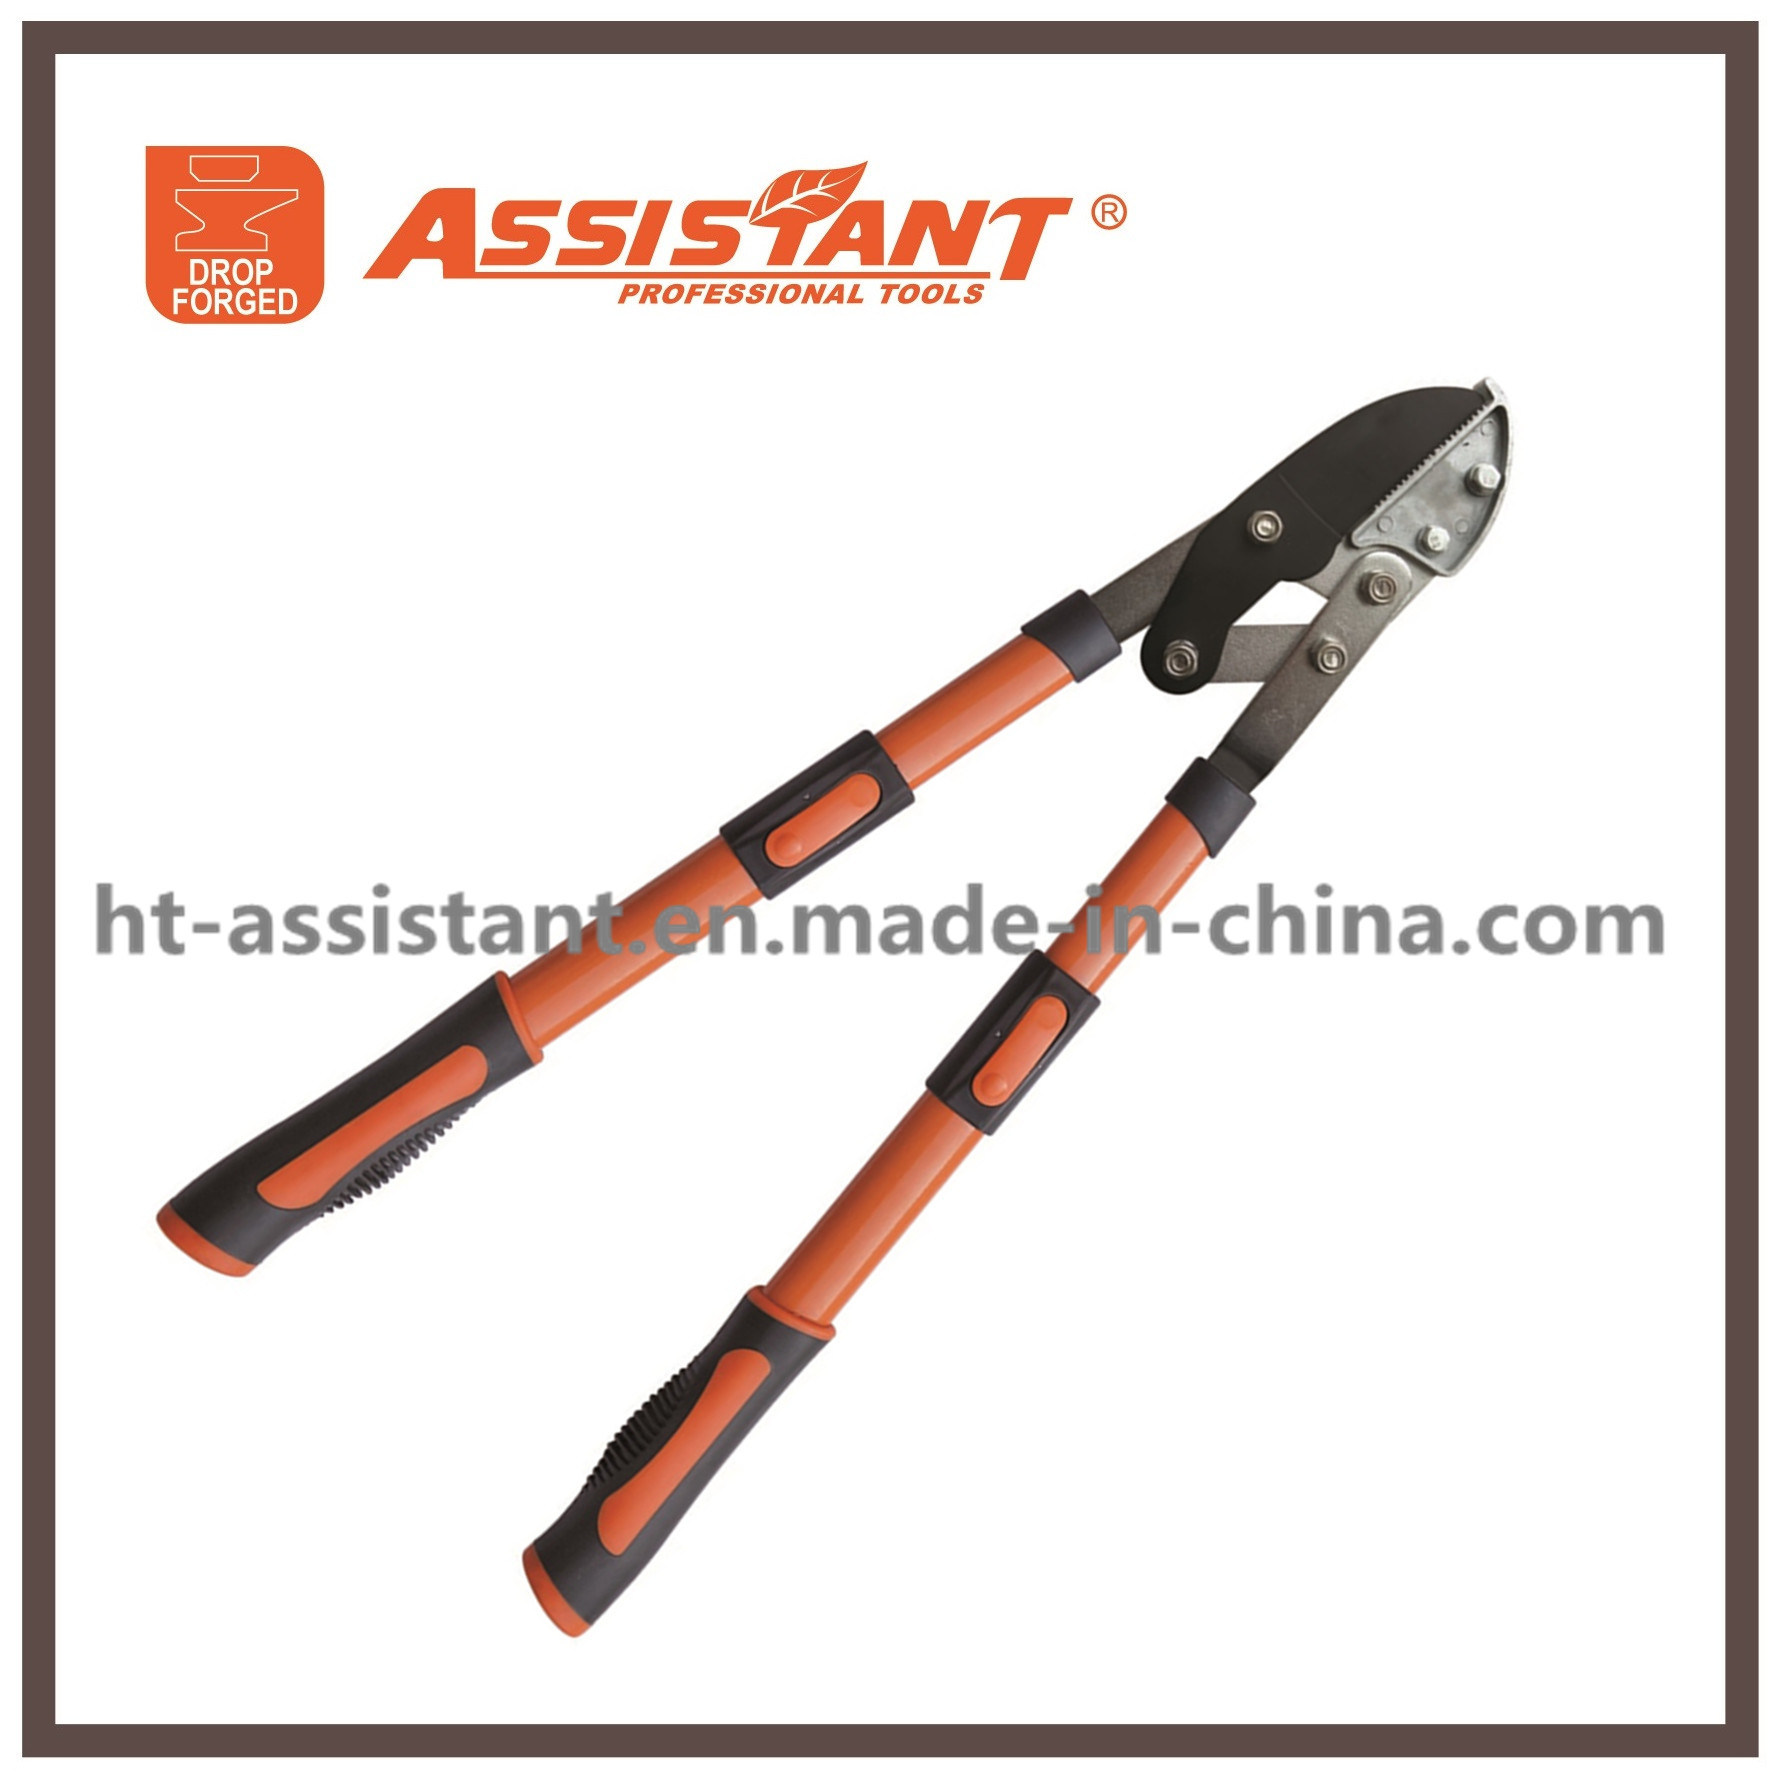 Extendable Lopping Shears Compound Telescopic Anvil Loppers